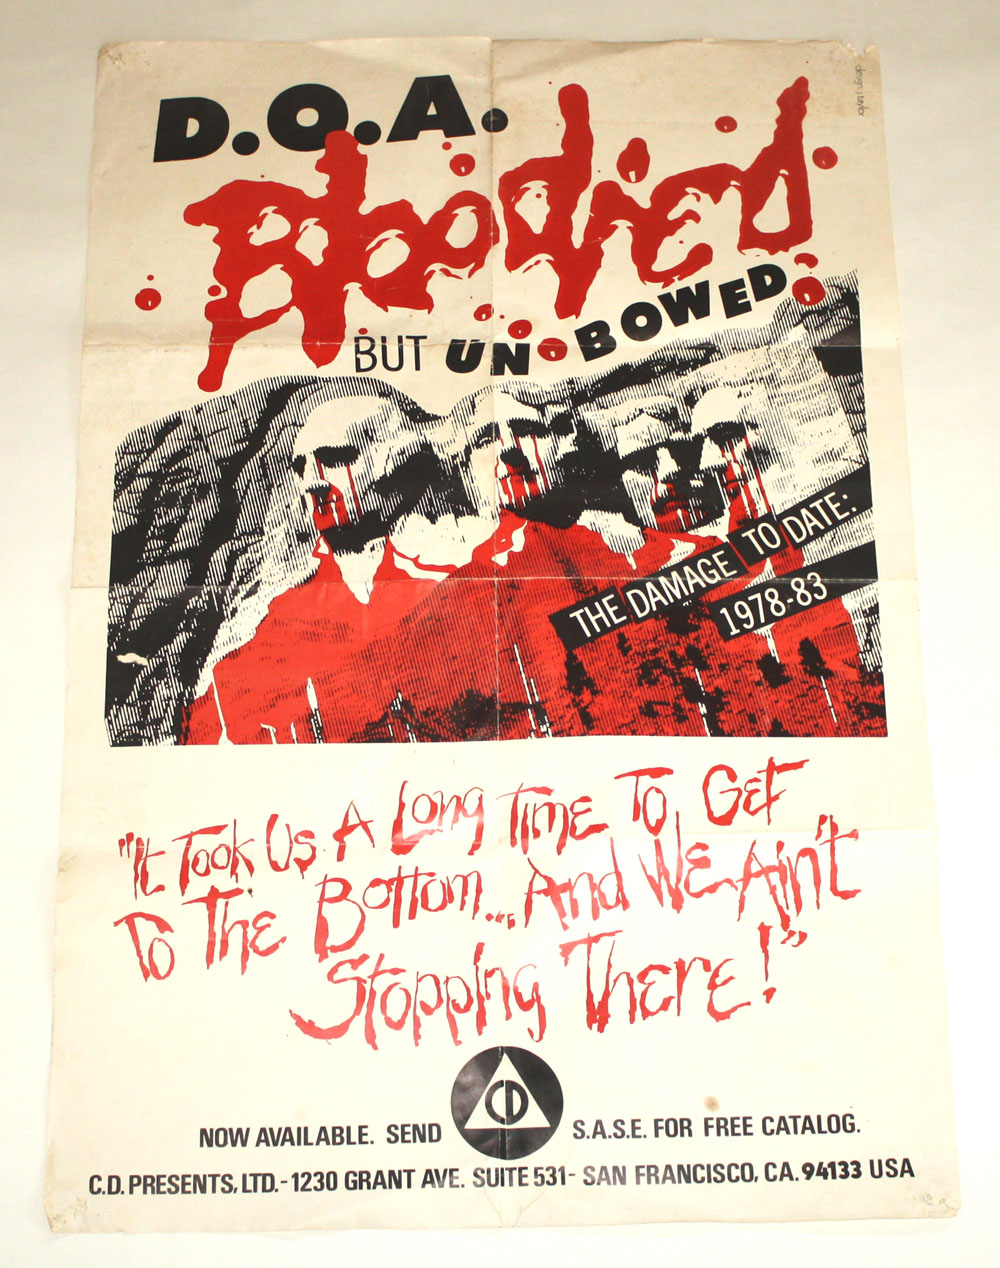 DOA Bloodied But Unbowed poster